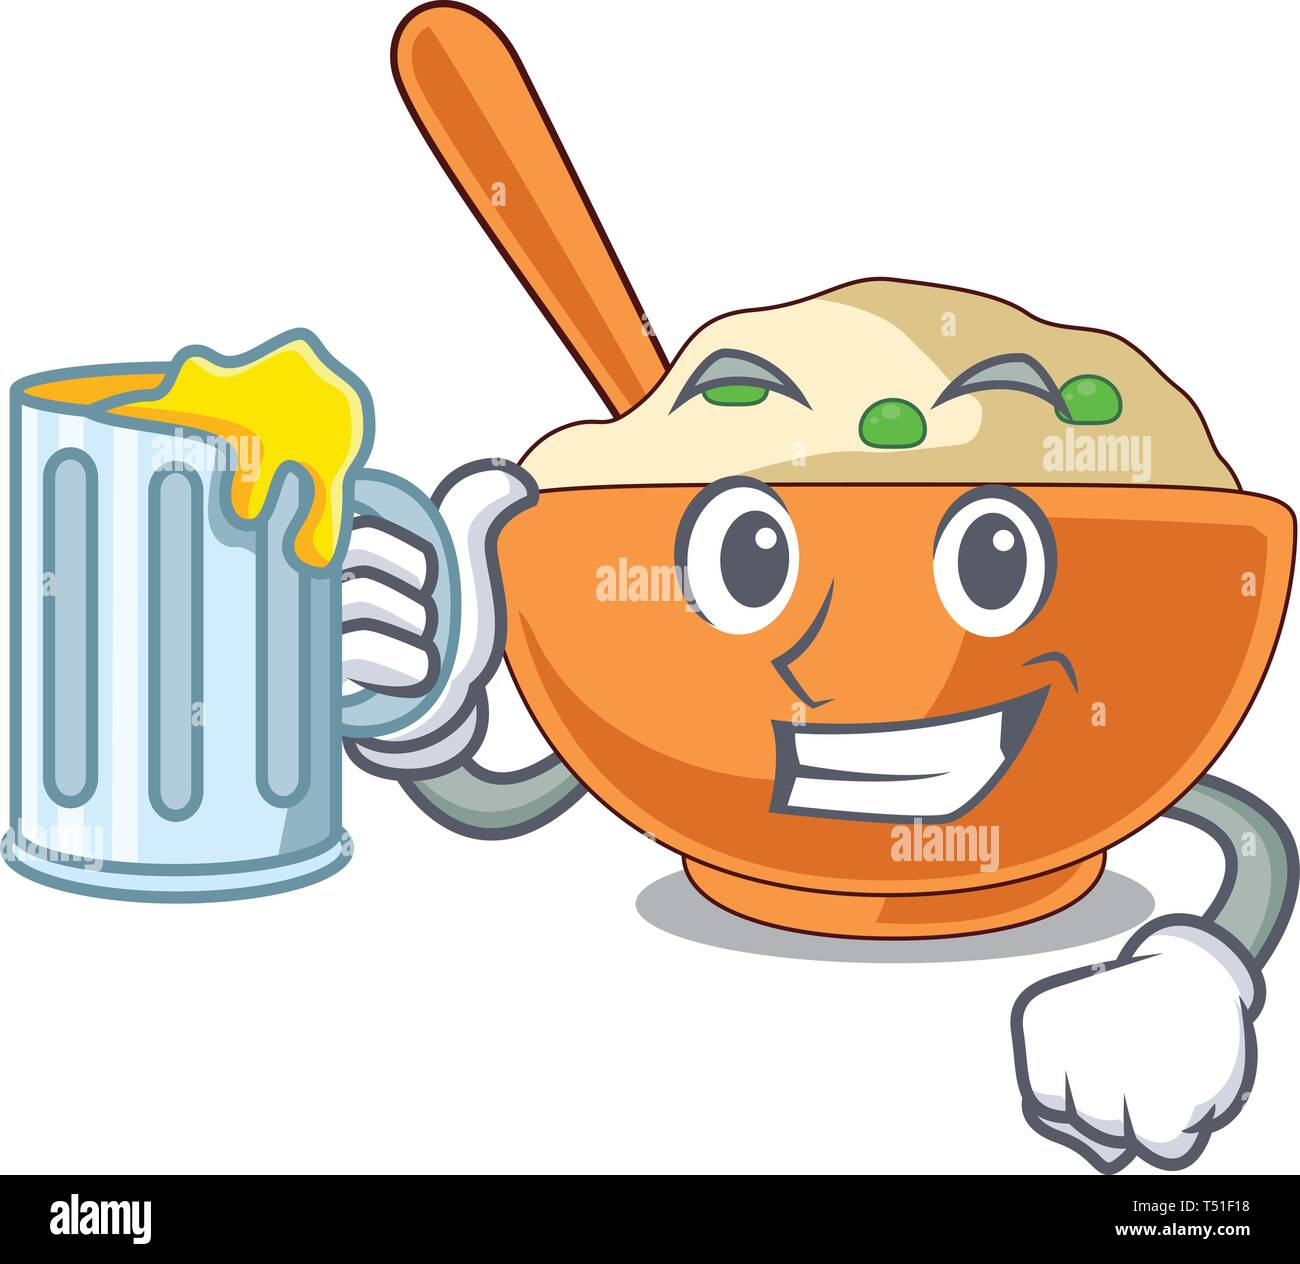 With juice mashed potato in the shape mascot - Stock Image